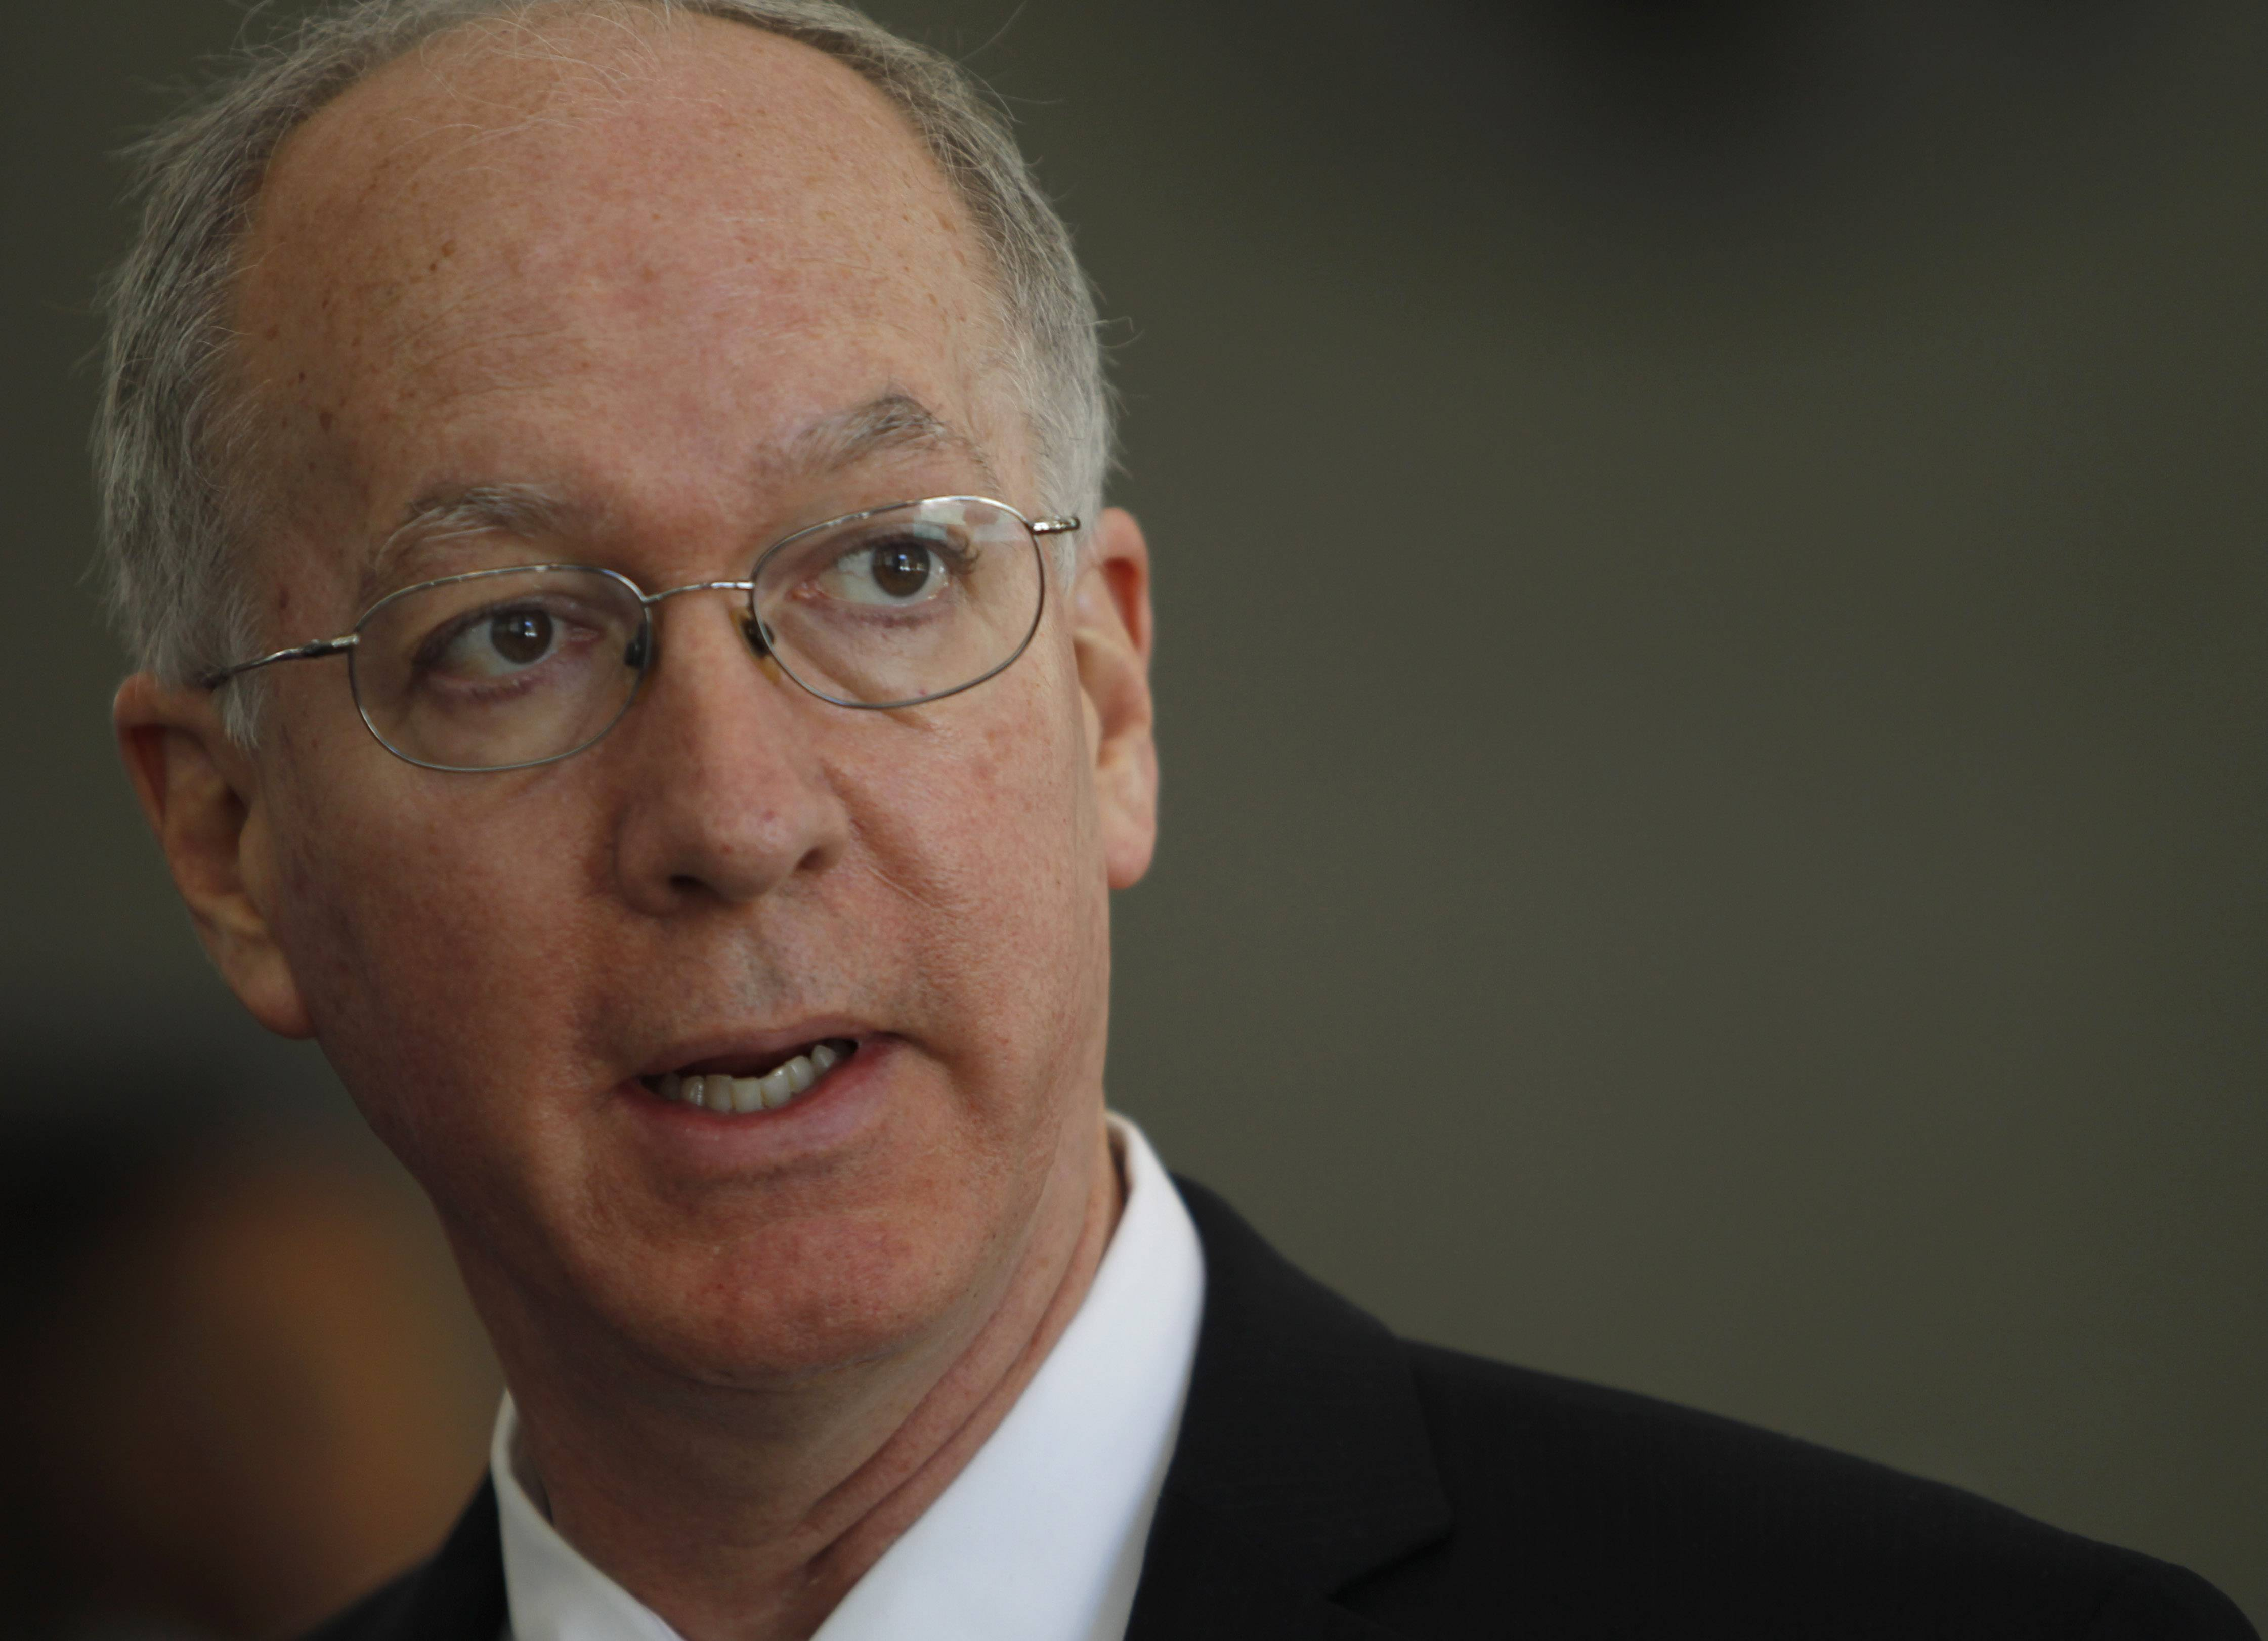 Rep. Bill Foster, an Naperville Democrat, says House Majority Leader Eric Cantor's shocking primary defeat shouldn't be viewed as a strike against immigration reform.